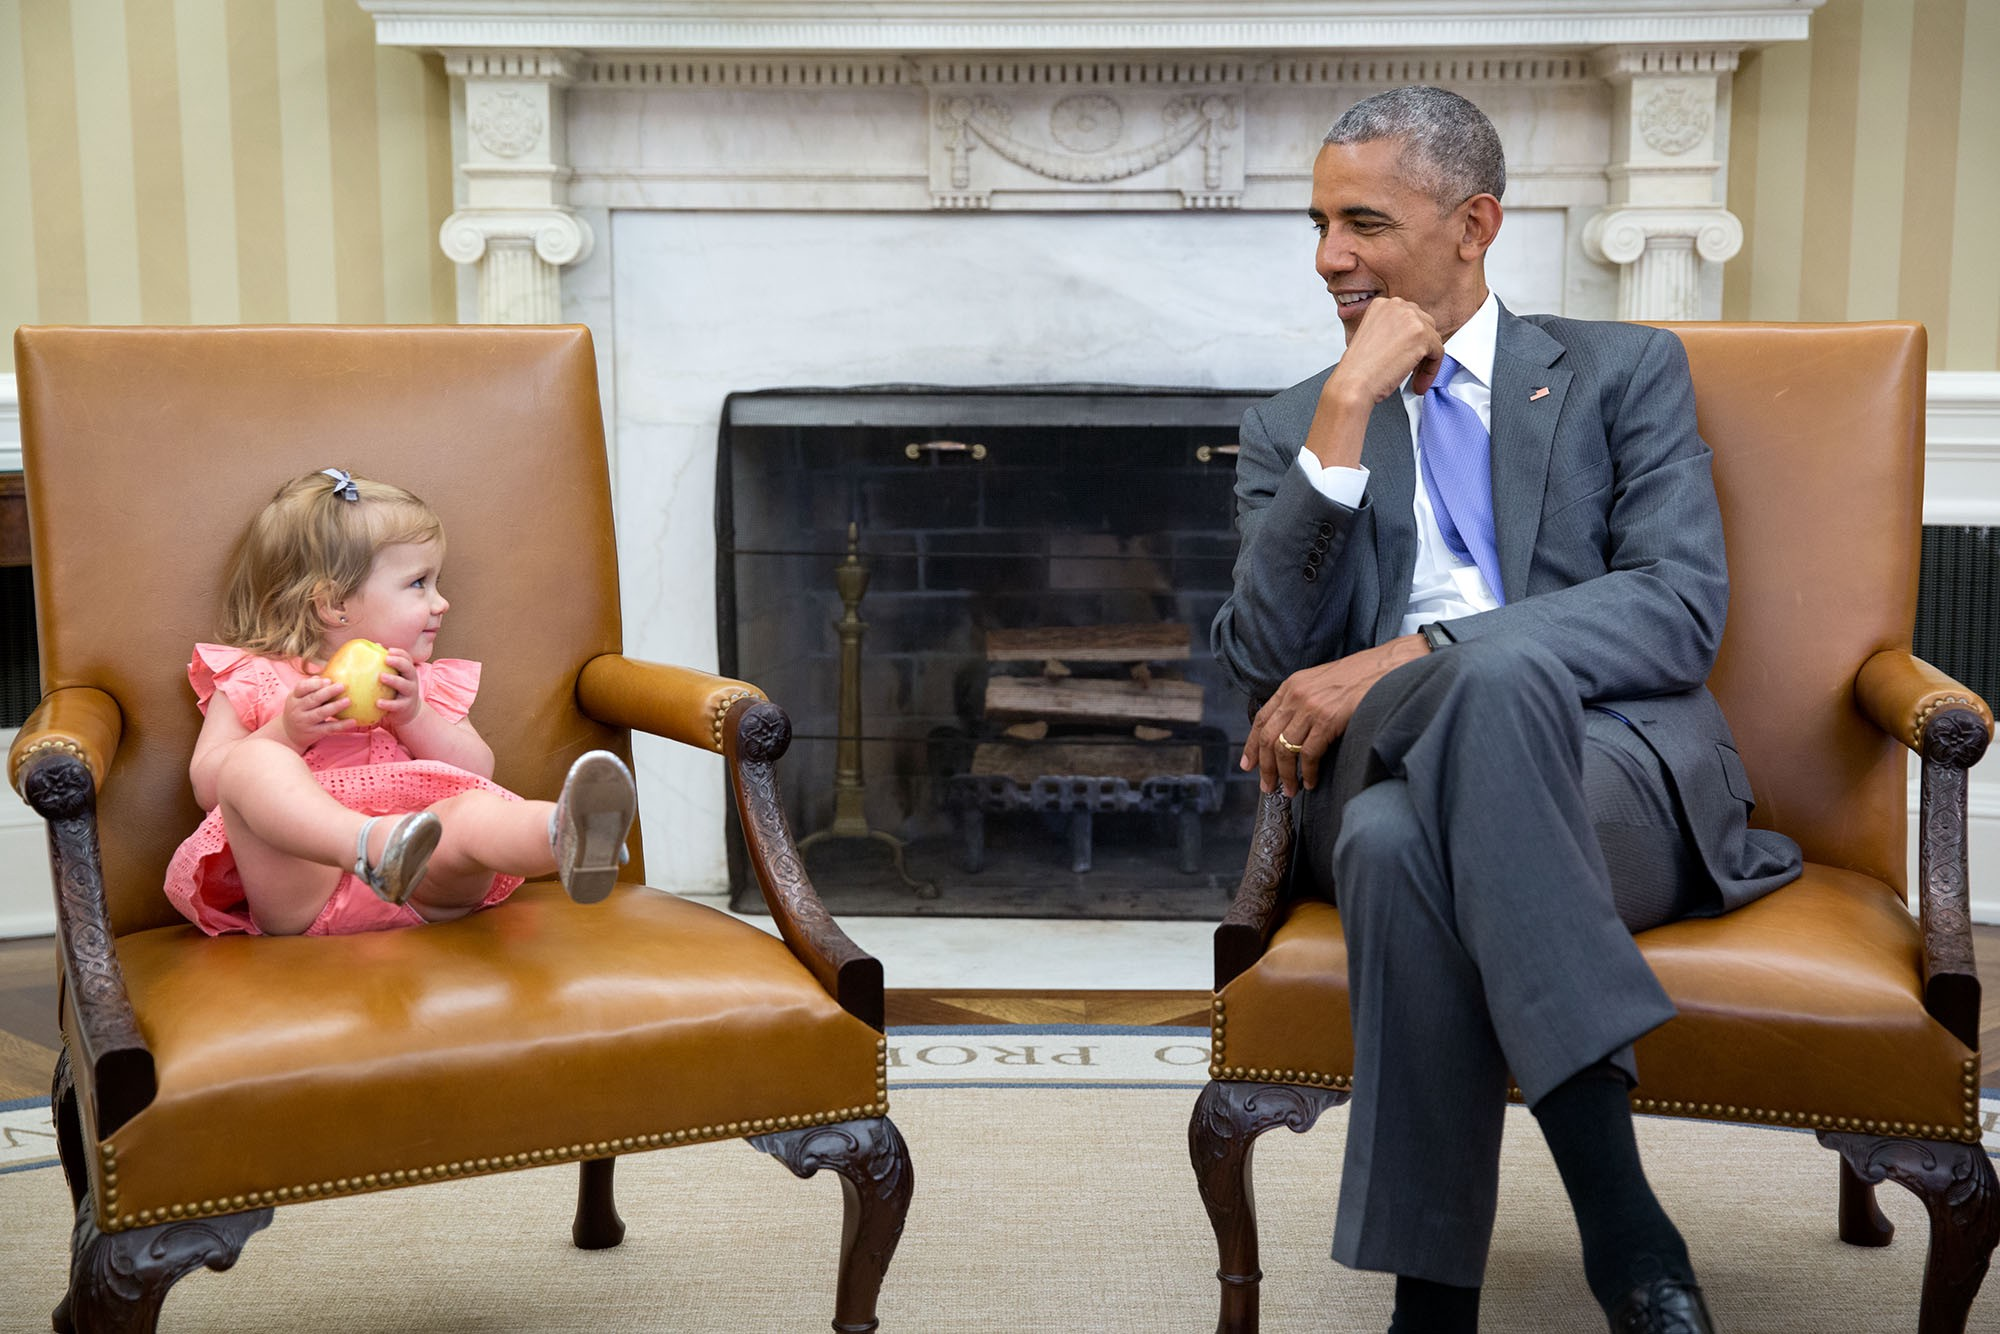 "June 22, 2016 ""The great thing about children is you just don't know what they will do in the presence of the President. So when David Axelrod stopped by the Oval Office with one of his sons' family, Axe's granddaughter, Maelin, crawled onto the Vice President's seat while the President continued his conversation with the adults. Then at one point, Maelin glanced over just as the President was looking back at her."" (Official White House Photo by Pete Souza)"